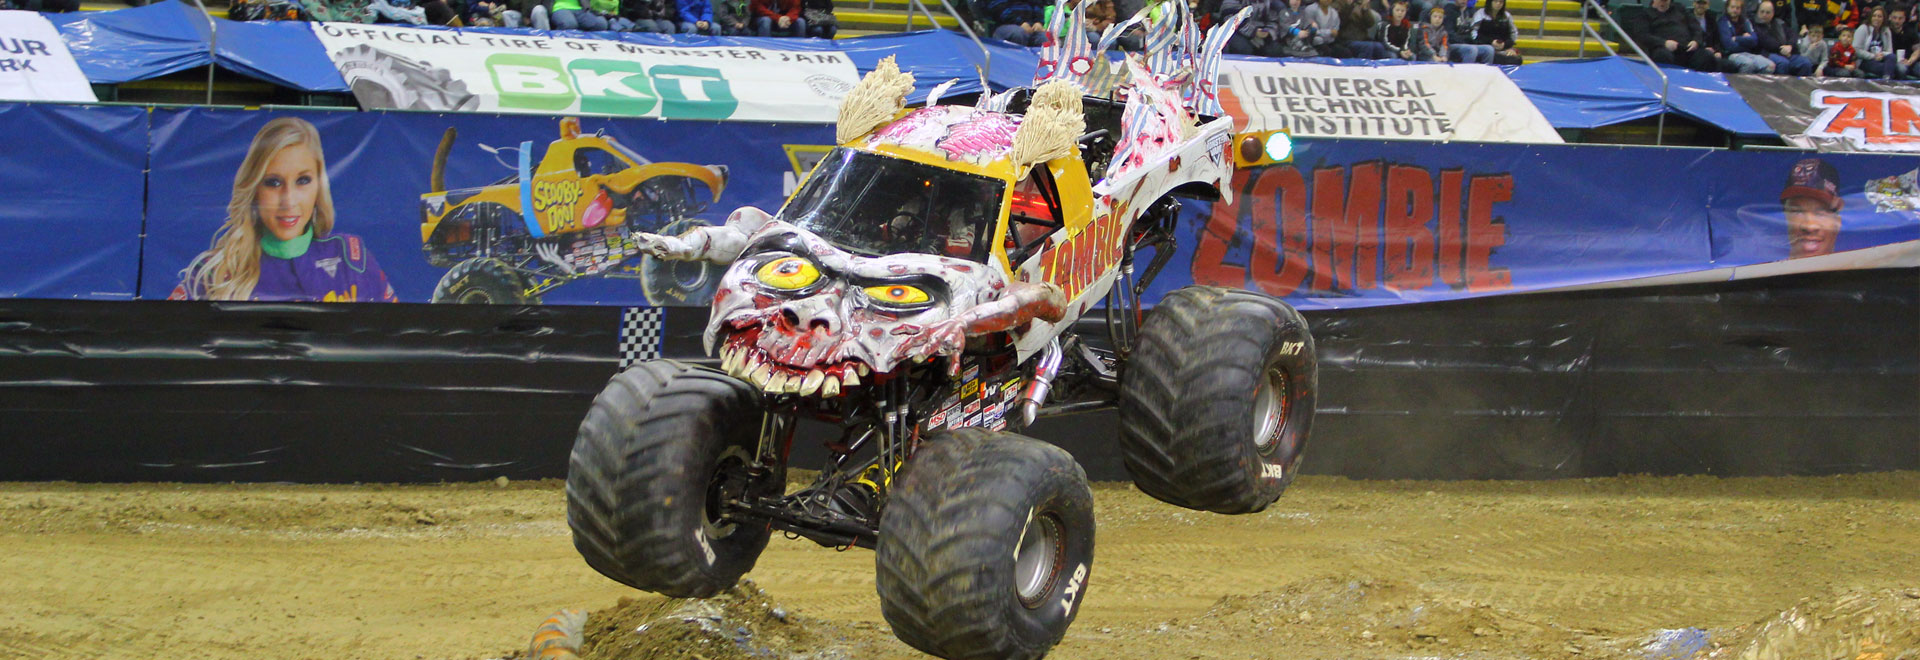 Round 5 of Monster Jam featuring the AMSOIL Series roars through Dayton, OH!